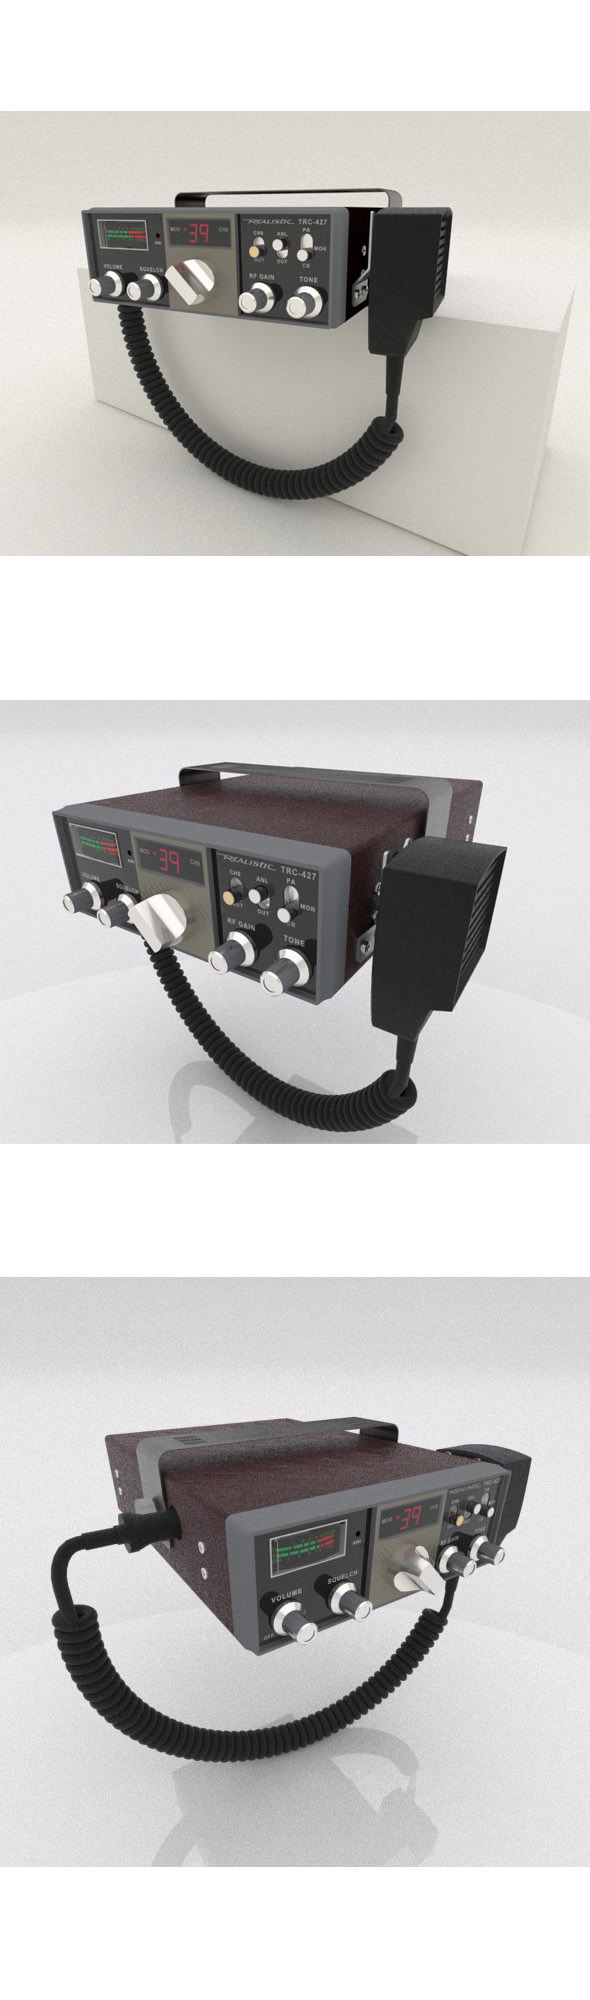 TRC-427 Citizens Band Radio - 3DOcean Item for Sale